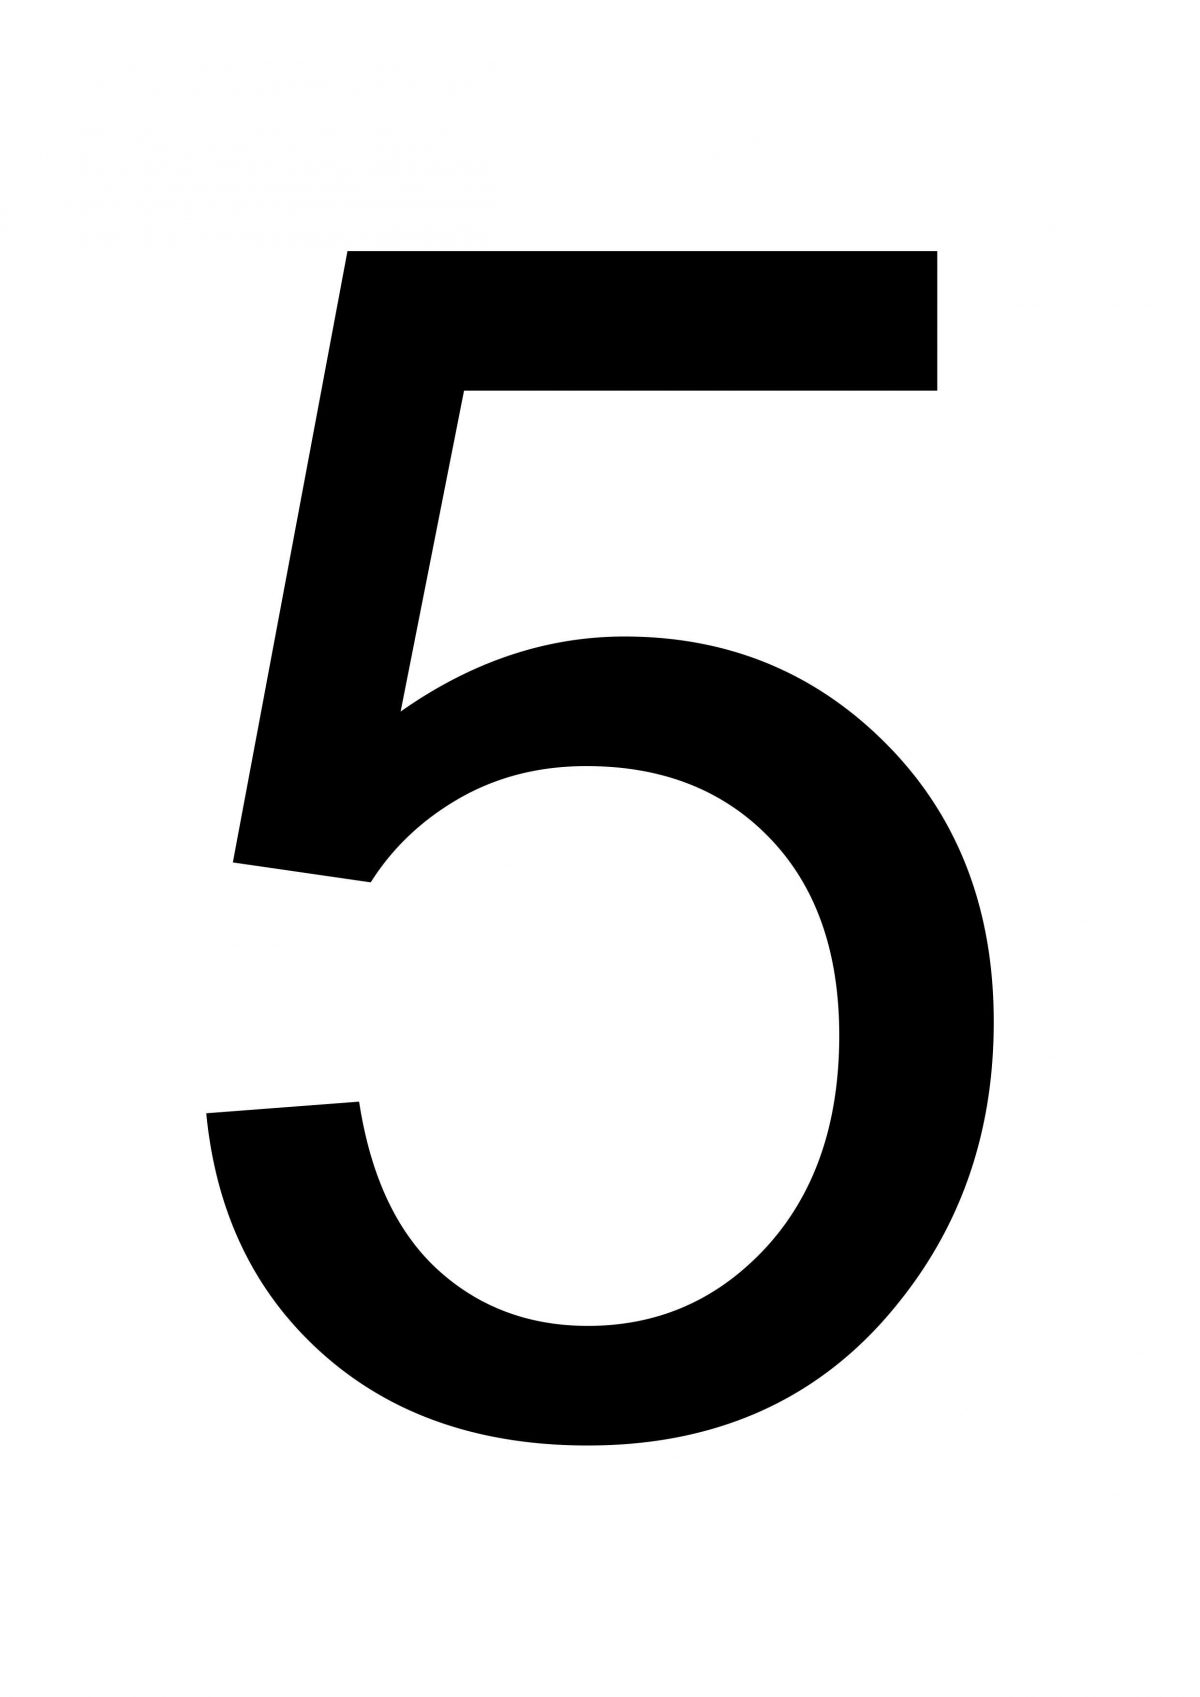 image regarding Free Large Printable Numbers called Superior Printable Amount 5 - Totally free Printables